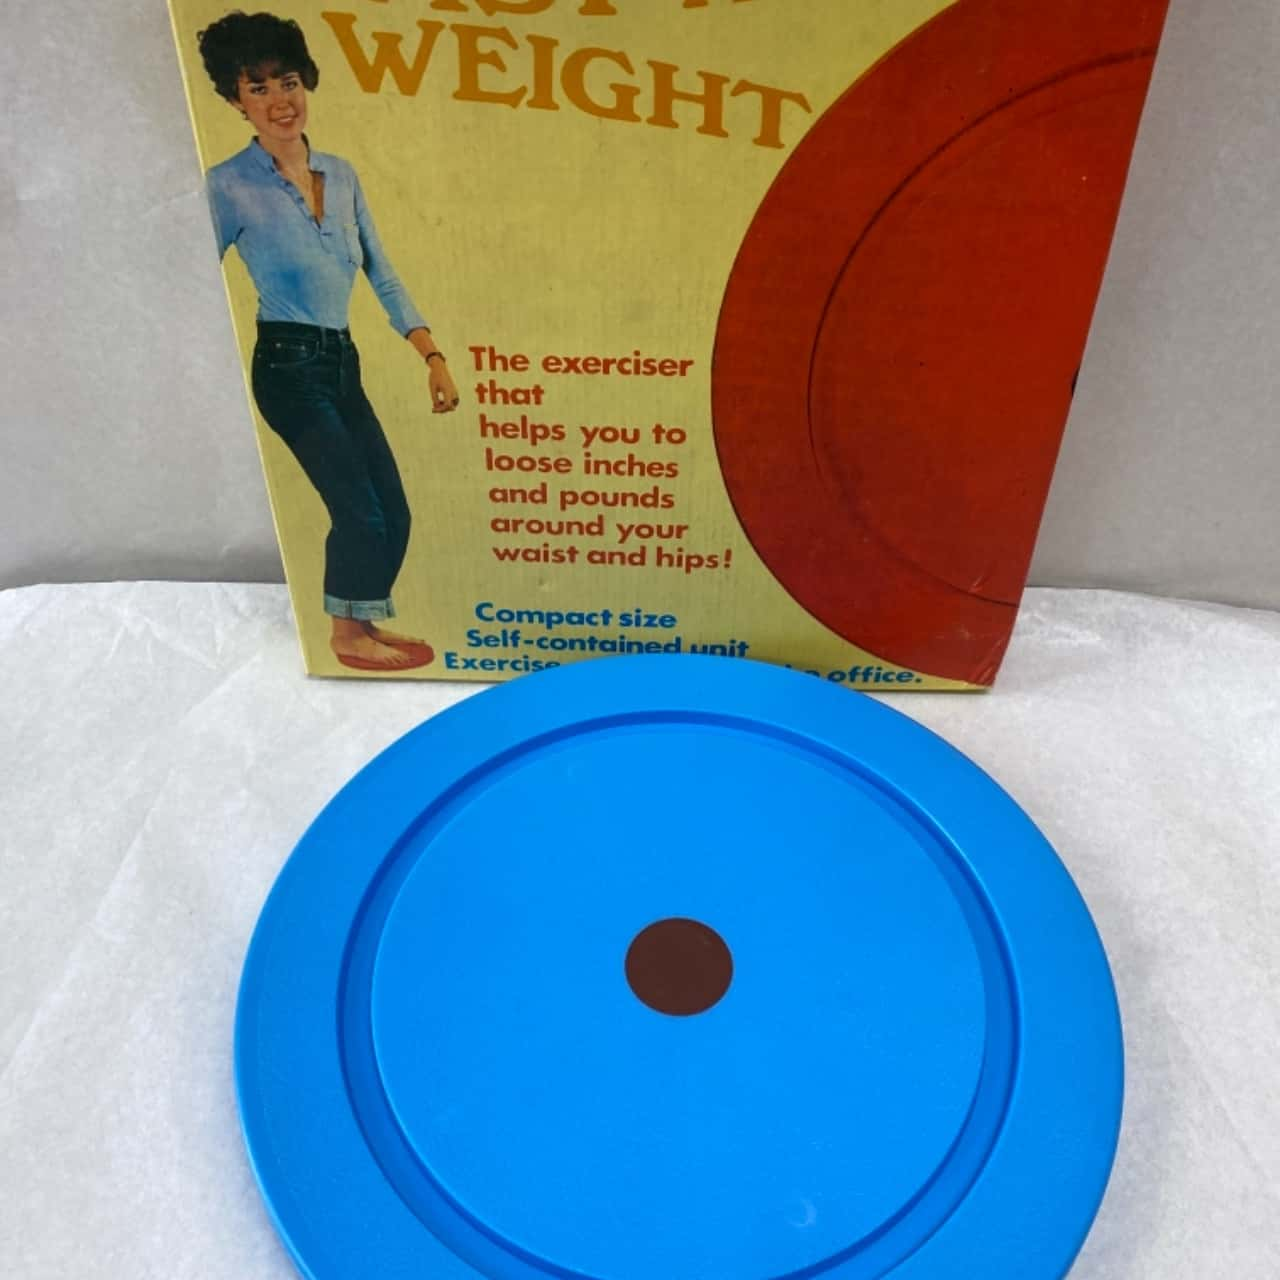 Retro Style Twist - A - Weight Home Exerciser-In Original Packaging